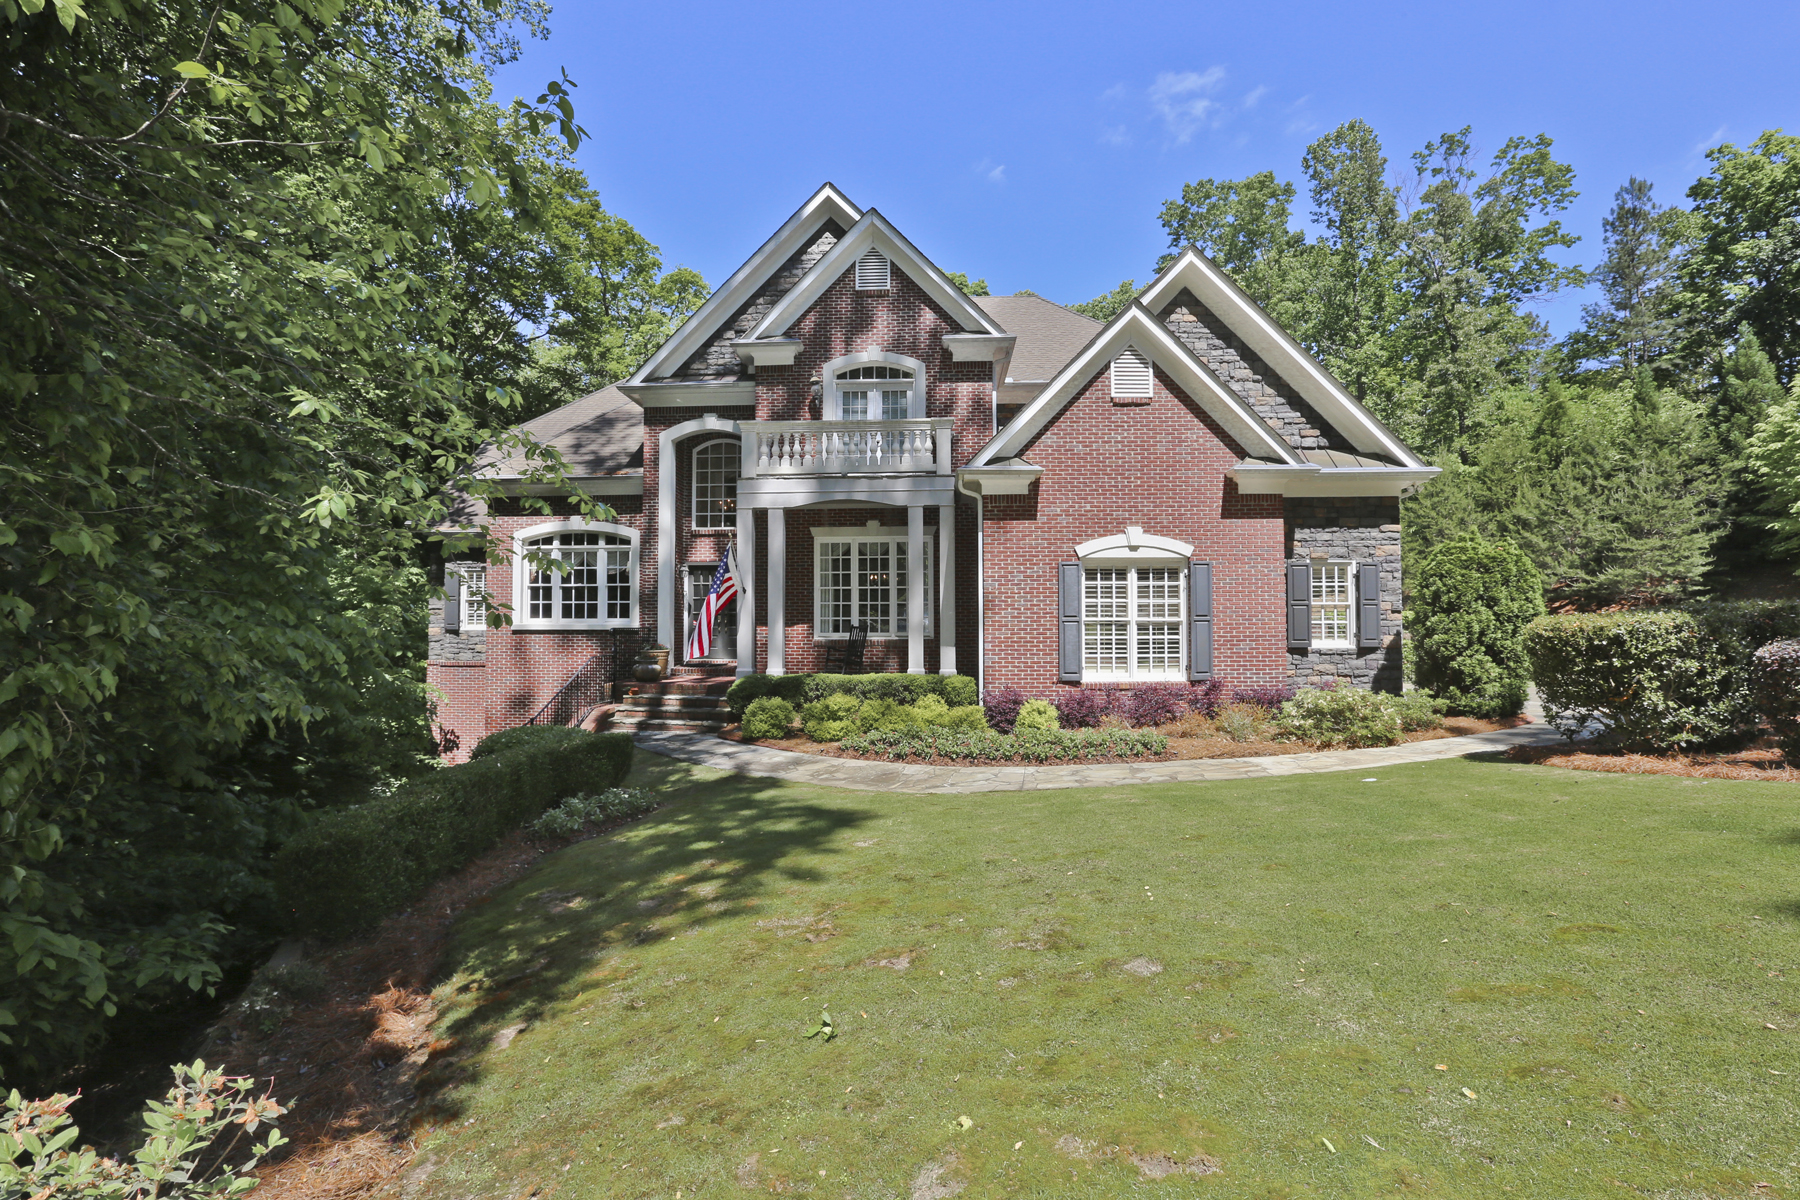 Single Family Home for Sale at Fabulous Executive Home 8222 Hewlett Road Sandy Springs, Georgia 30350 United States